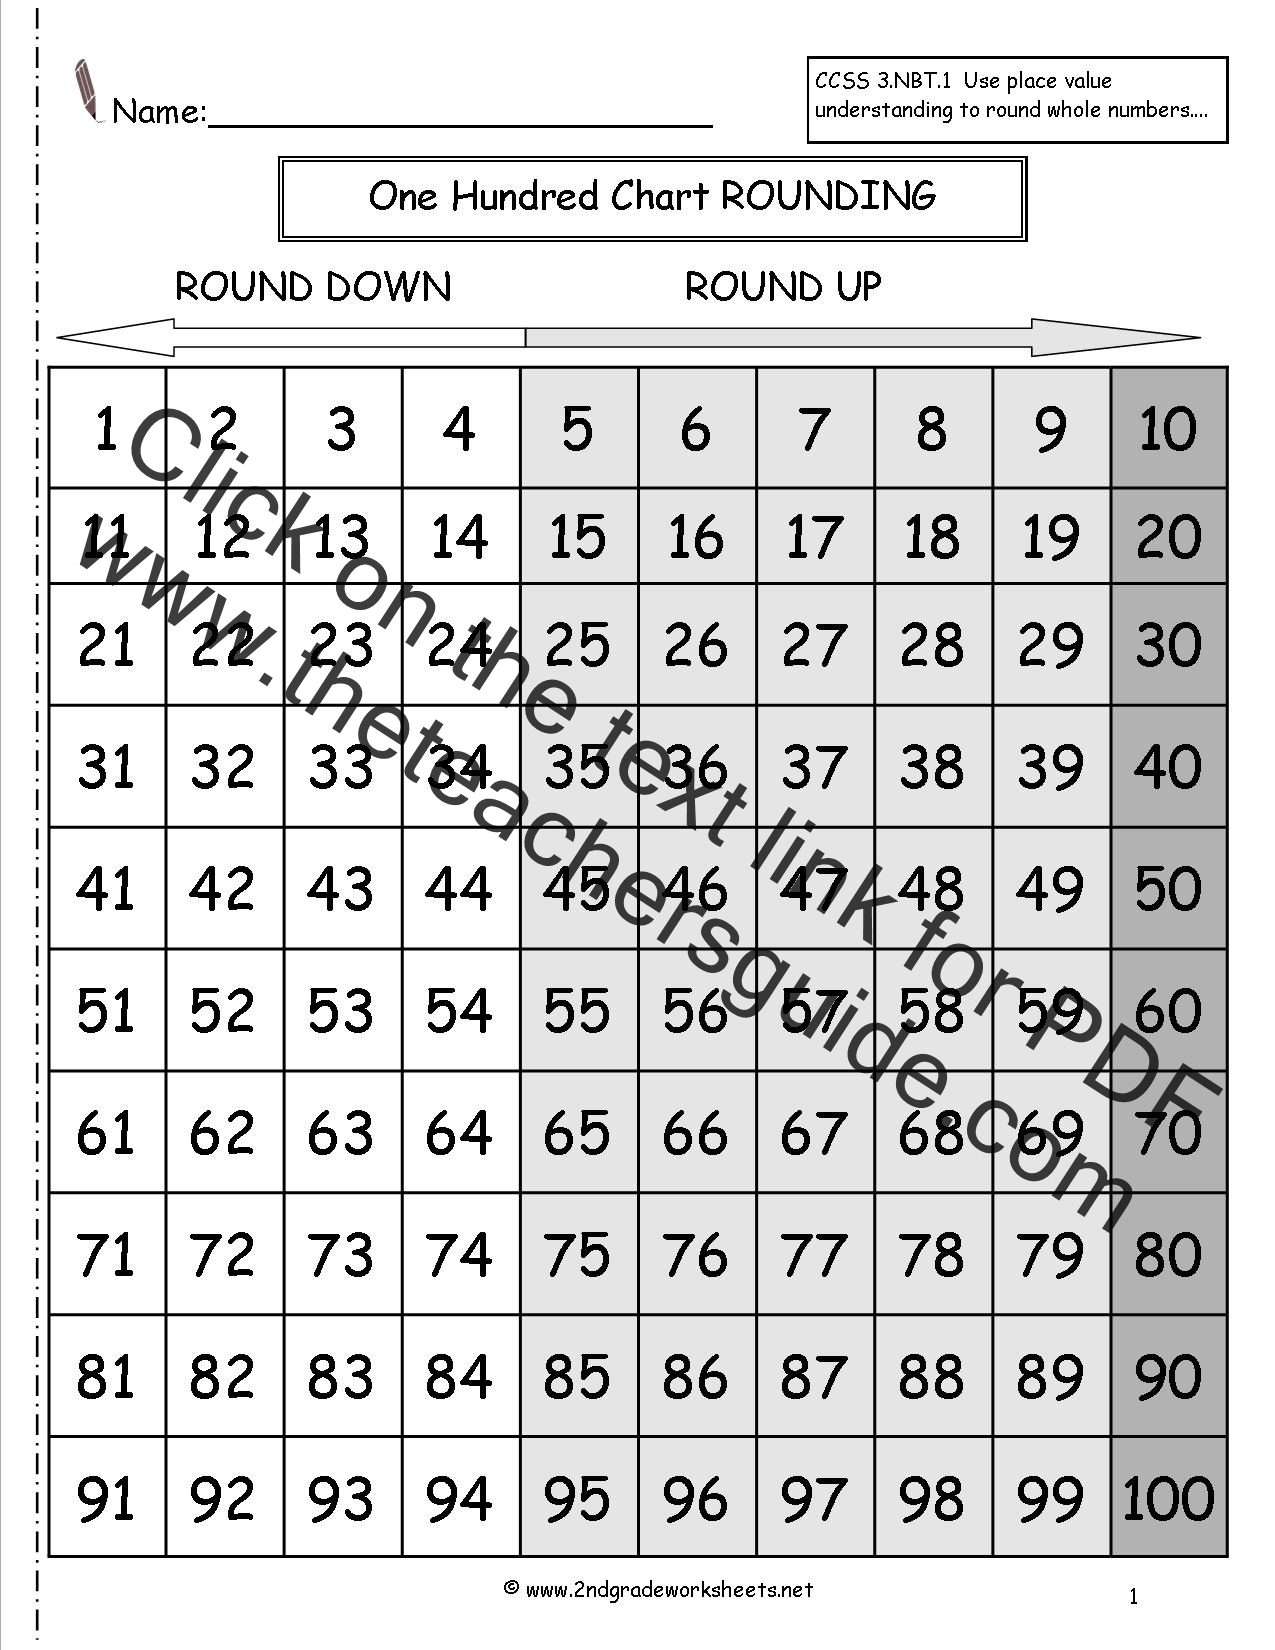 worksheet Round To The Nearest Tenth Worksheet rounding whole numbers worksheets one hundred chart worksheet